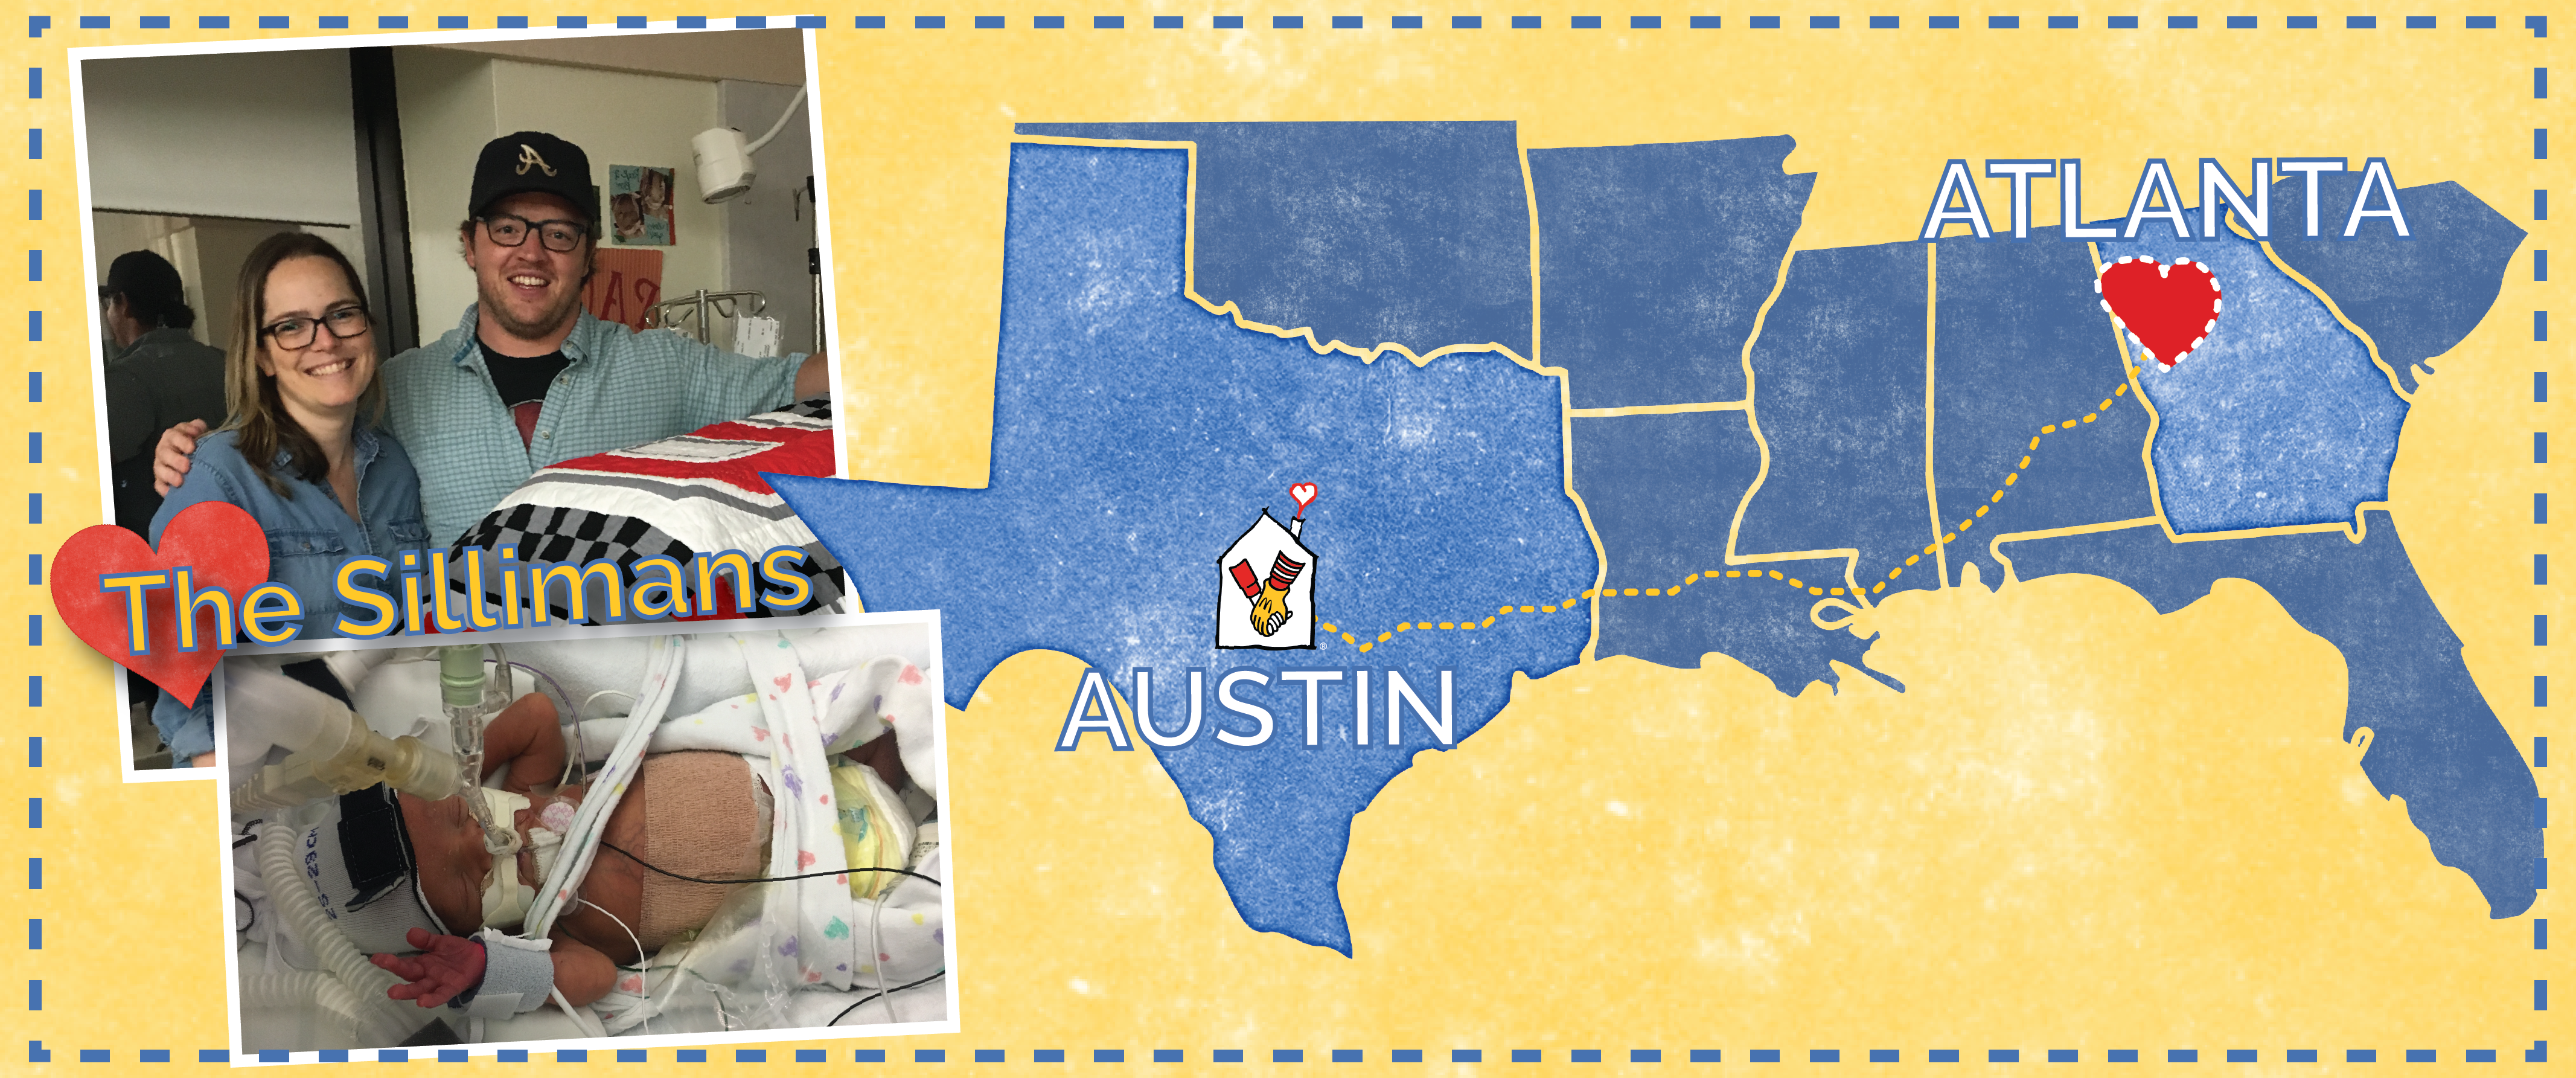 In upper left corner, mom and dad smiling; lower left corner, baby in incubator with hospital monitors and tubes. Whimsical map of lower United States showing distance between Austin and Atlanta